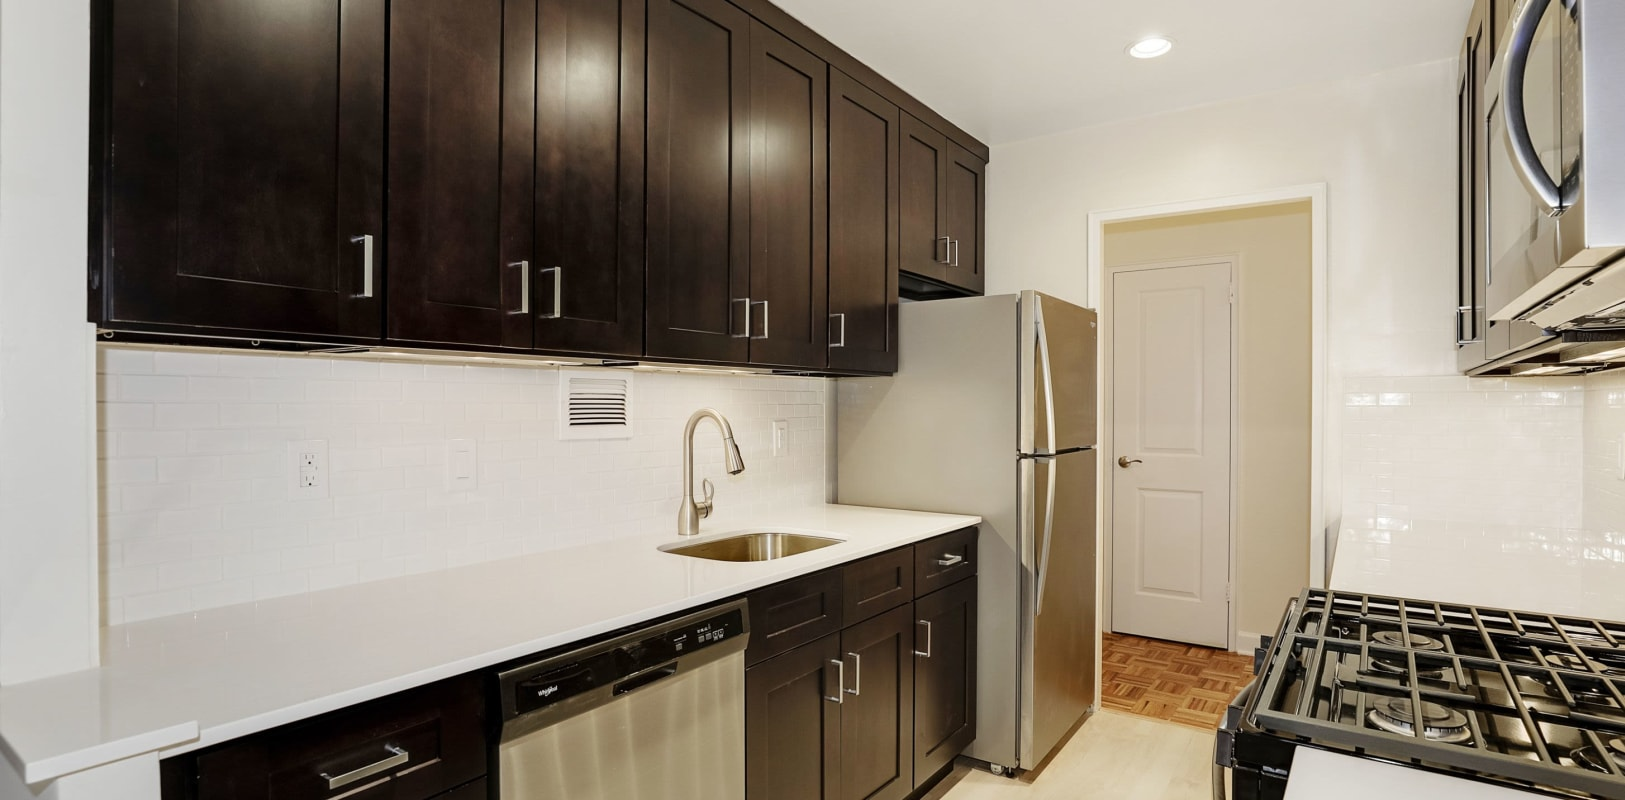 Spacious kitchen at Hamilton Court in Morristown, New Jersey